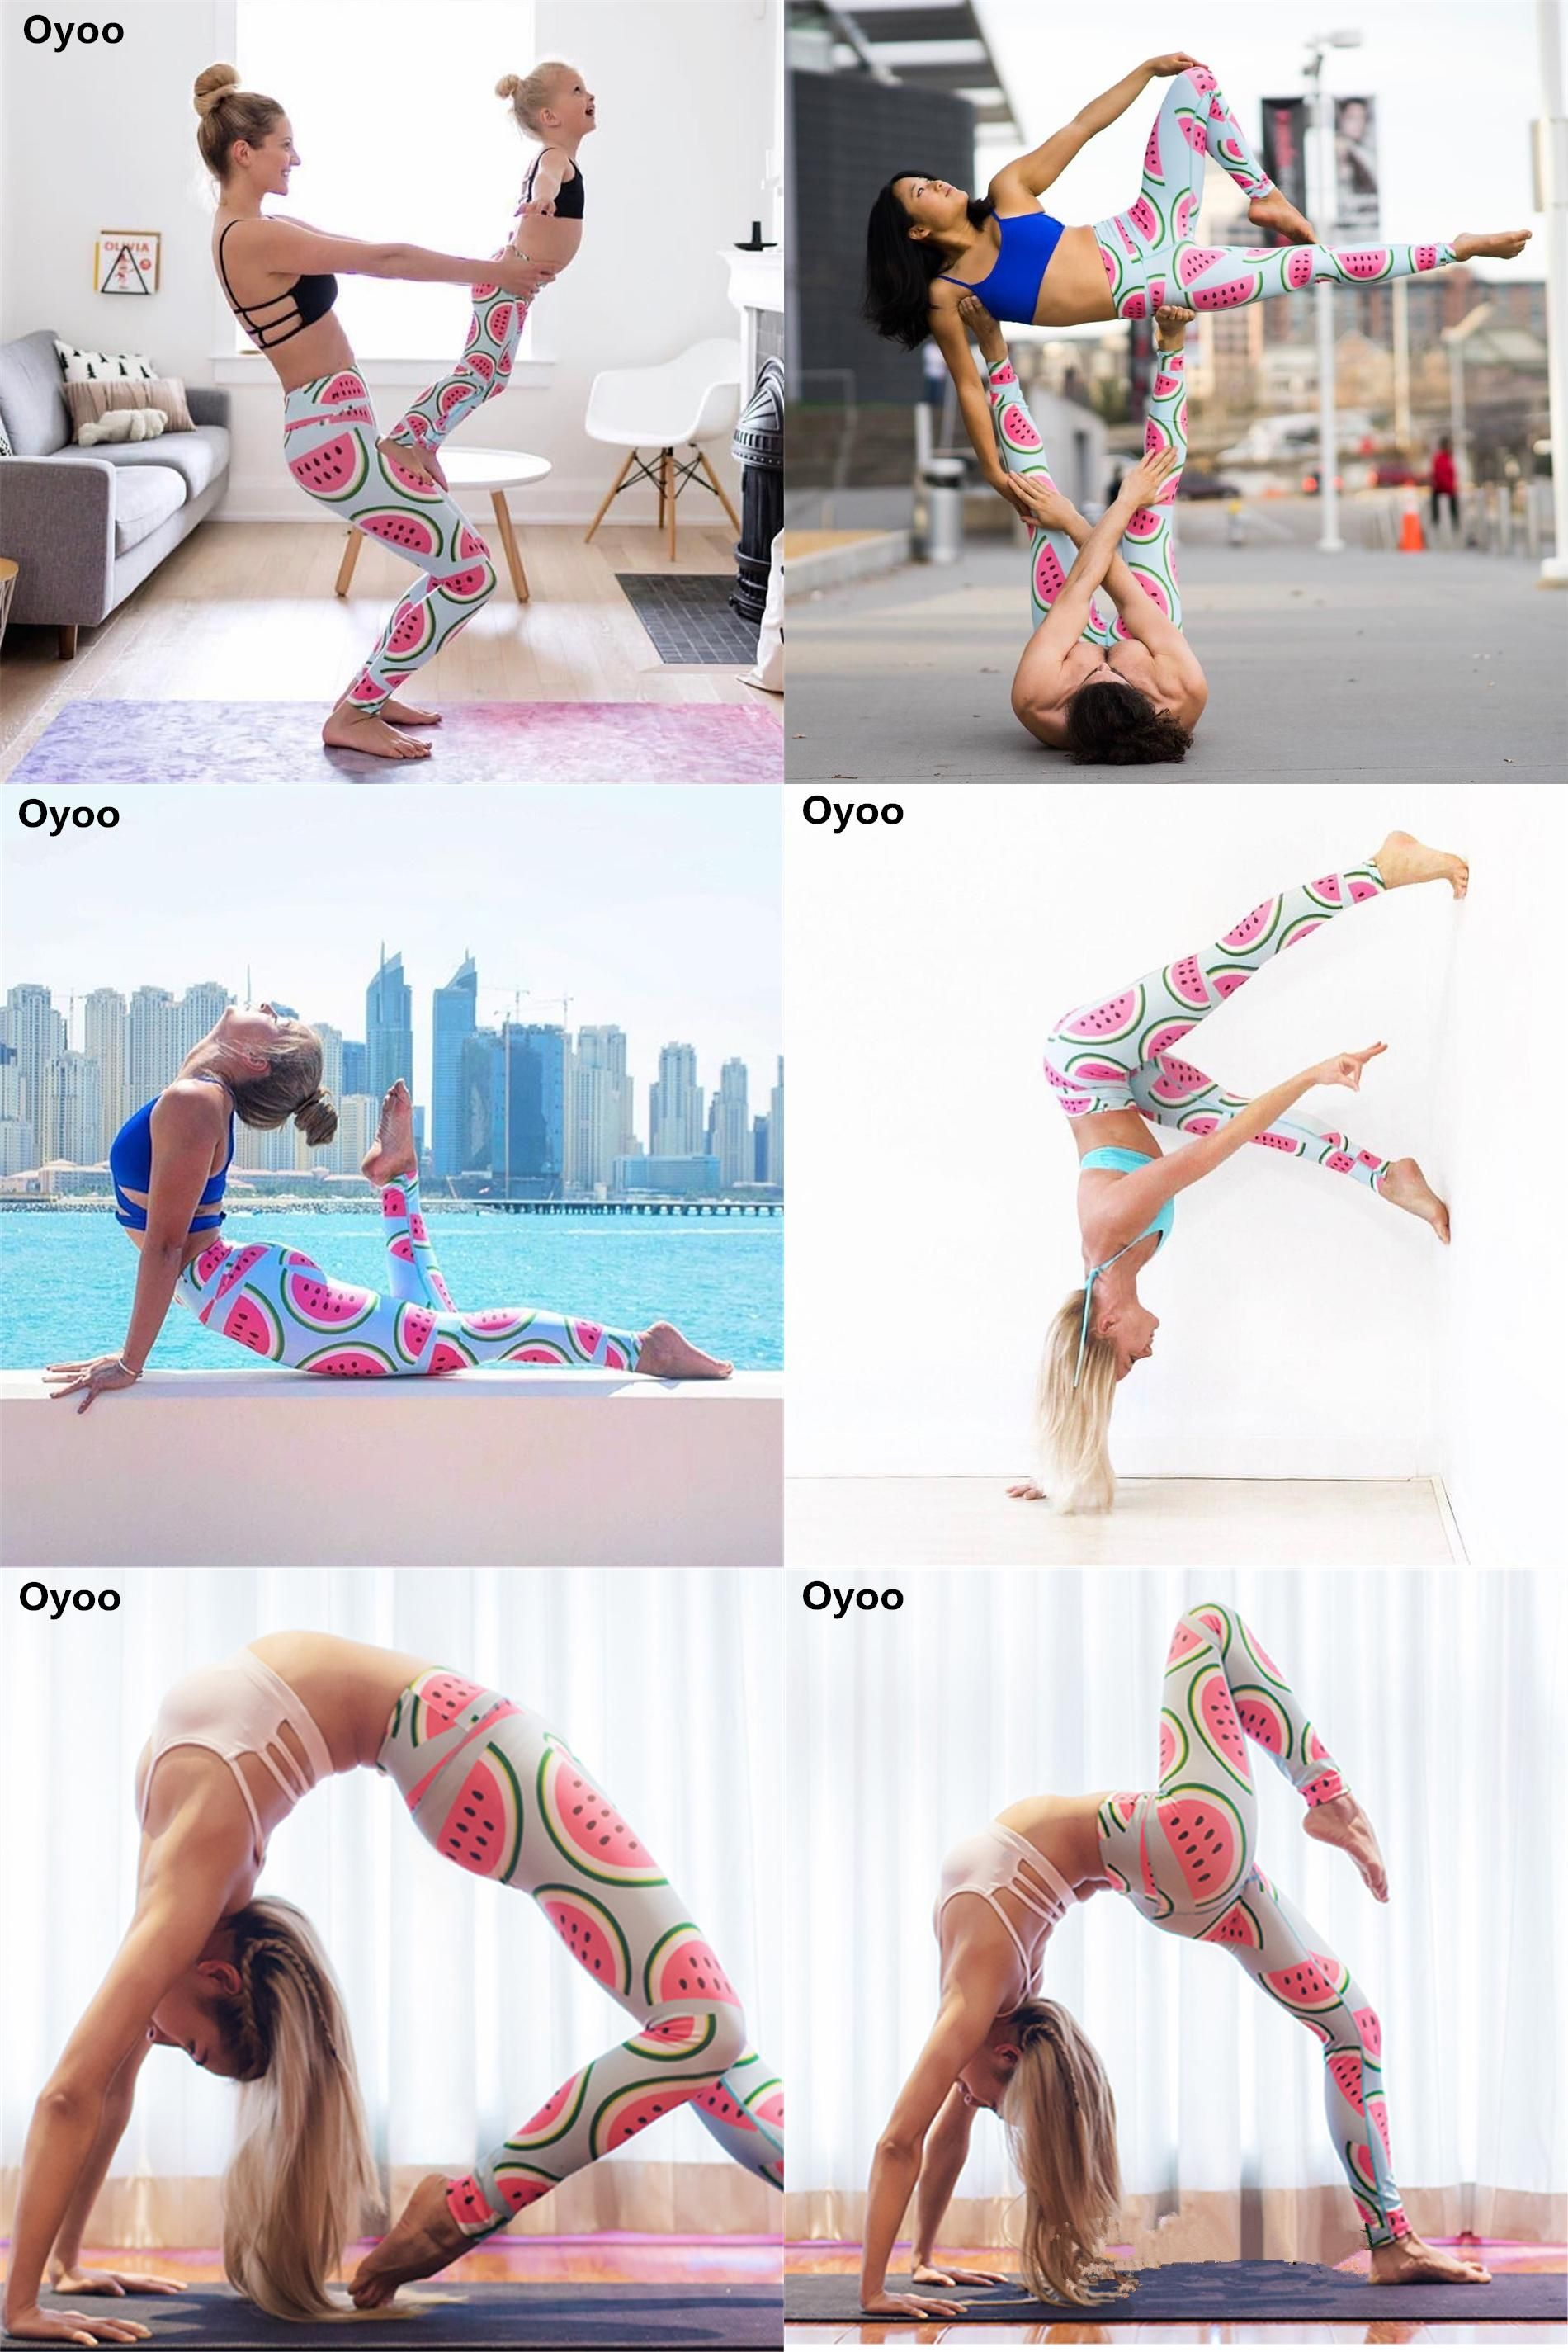 18d0bc8516de7a [Visit to Buy] Oyoo cute pink watermelon legging printed sport yoga pants  women high waist gym fitness leggings support drop shipping #Advertisement